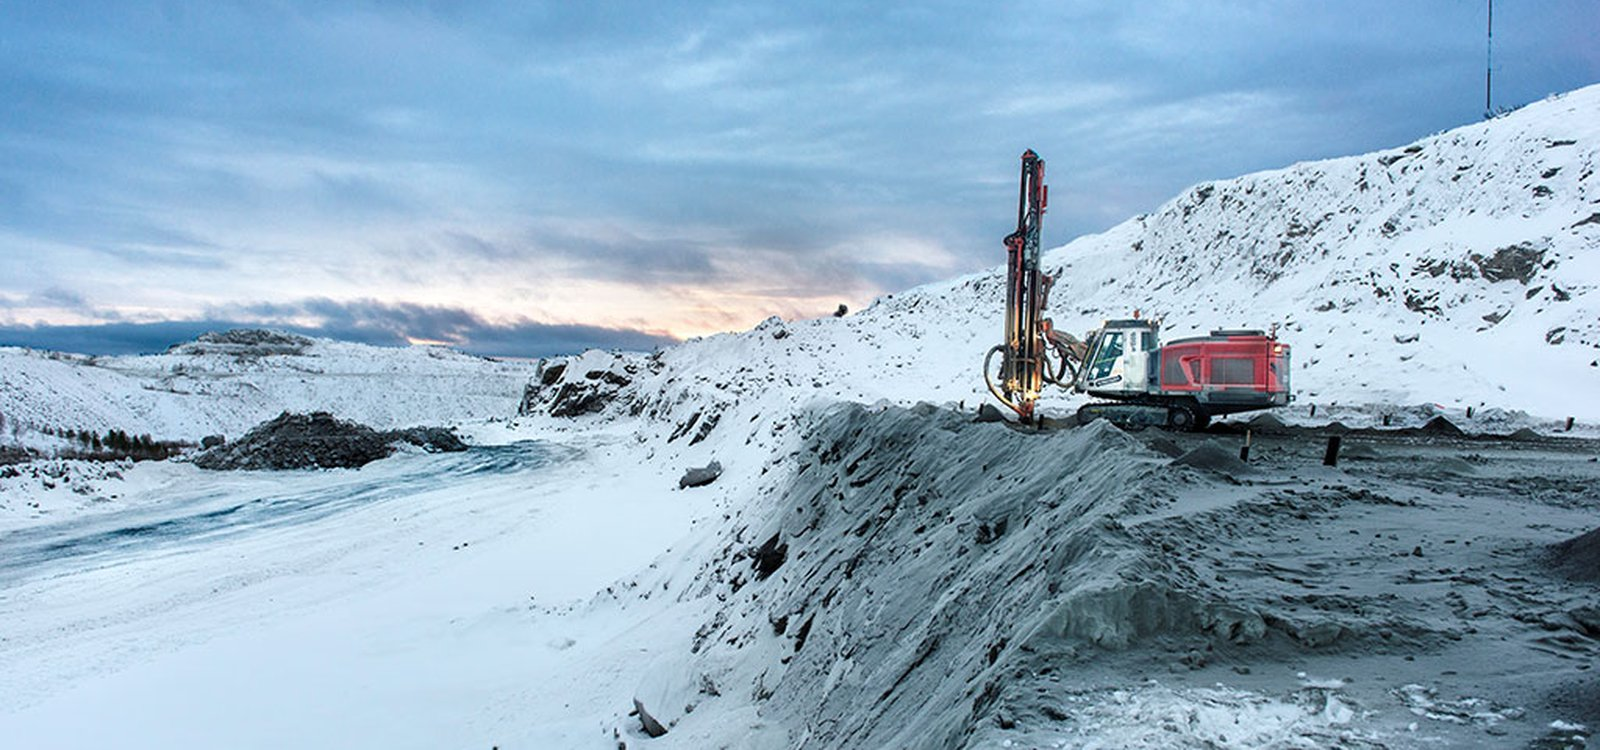 There's plenty of high-quality iron ore under Finnmark in Arctic Norway, but extracting it profitably is challenging.